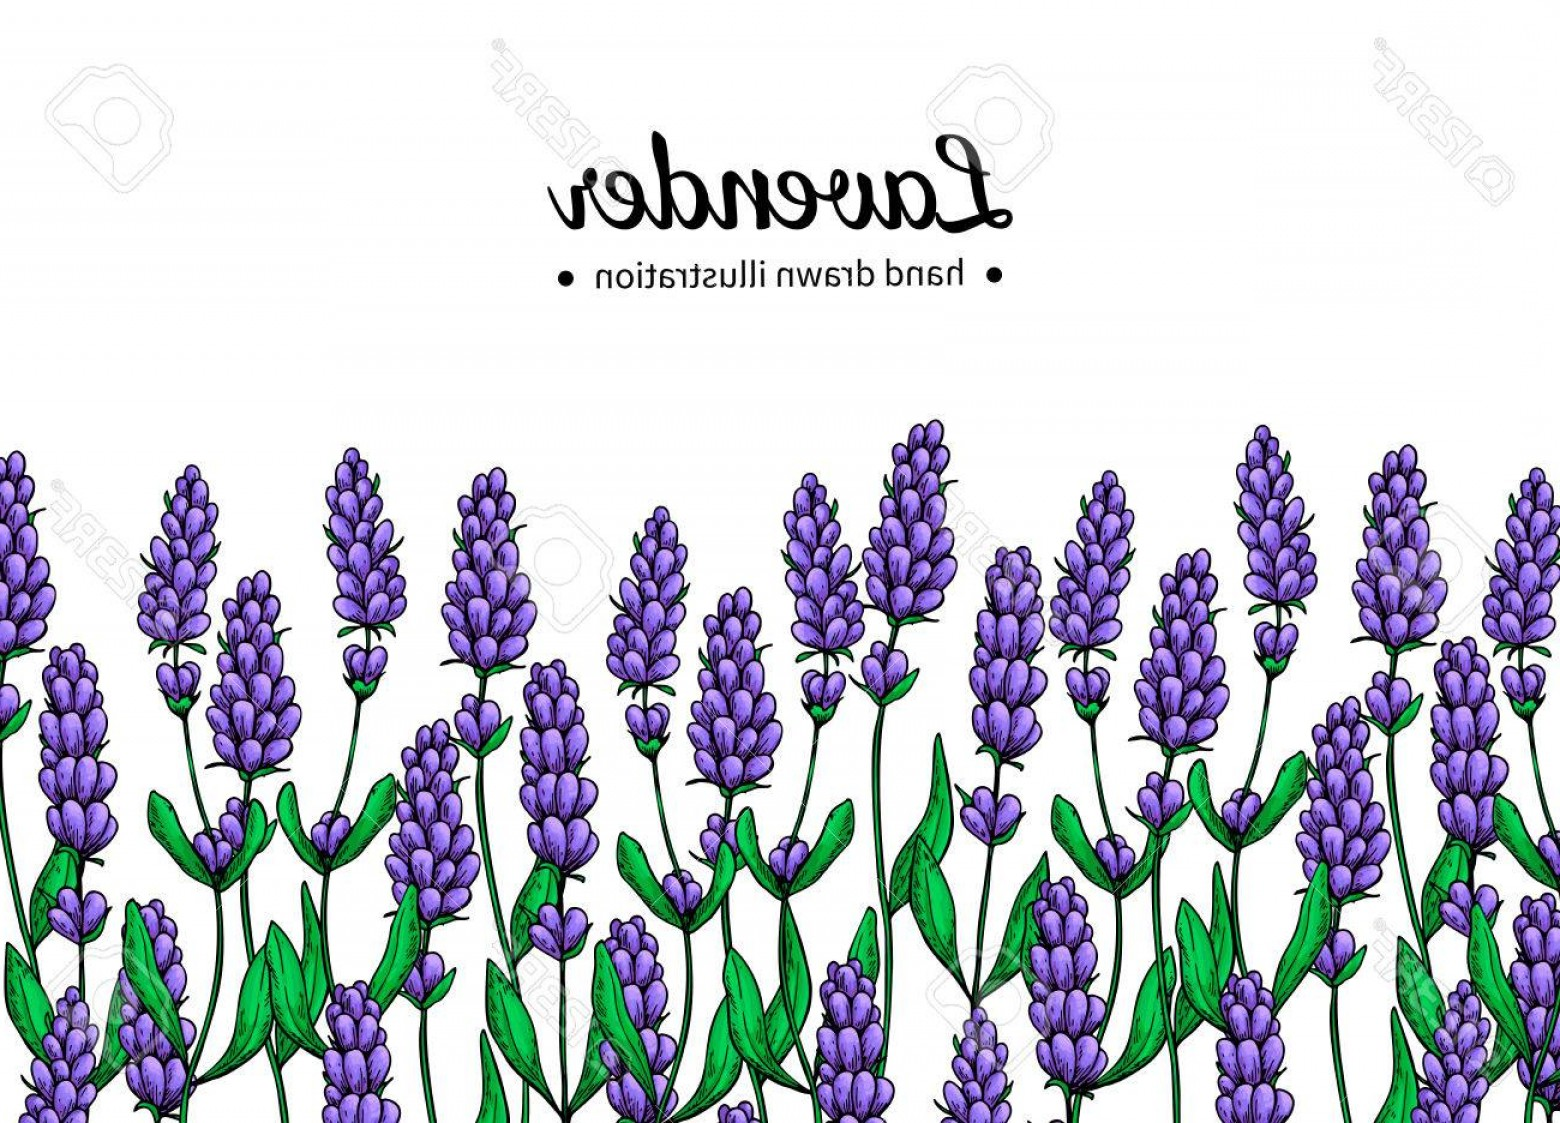 Lilac Vector Drawing: Photostock Vector Lavender Vector Drawing Border Isolated Wild Flower And Leaves Herbal Artistic Style Illustration